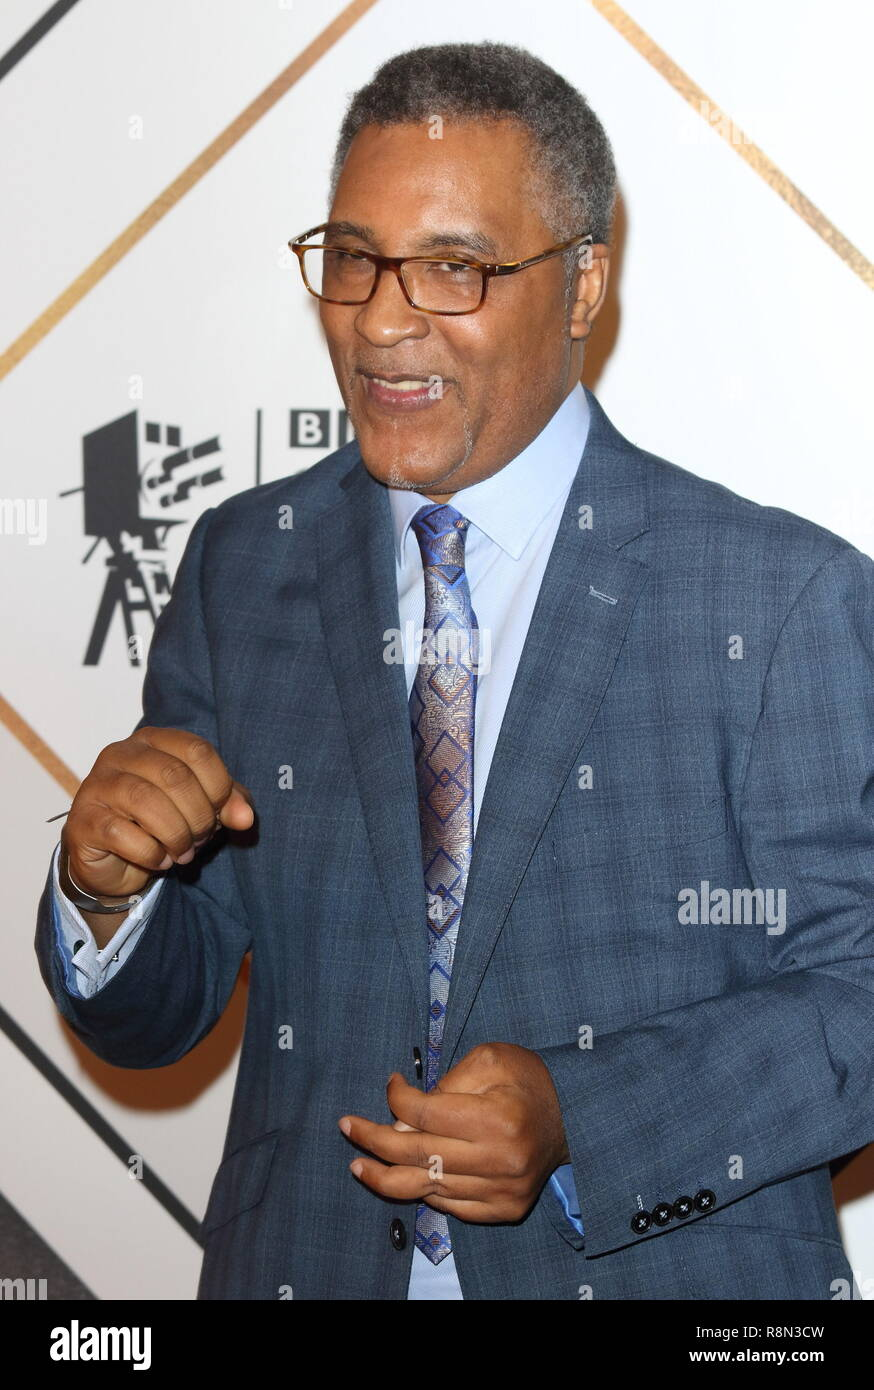 Birmingham, UK. 16th Dec, 2018. Michael Watson on the red carpet at the BBC Sports Personality Of The Year 2018 at the Resorts World Arena. Credit: Keith Mayhew/SOPA Images/ZUMA Wire/Alamy Live News - Stock Image